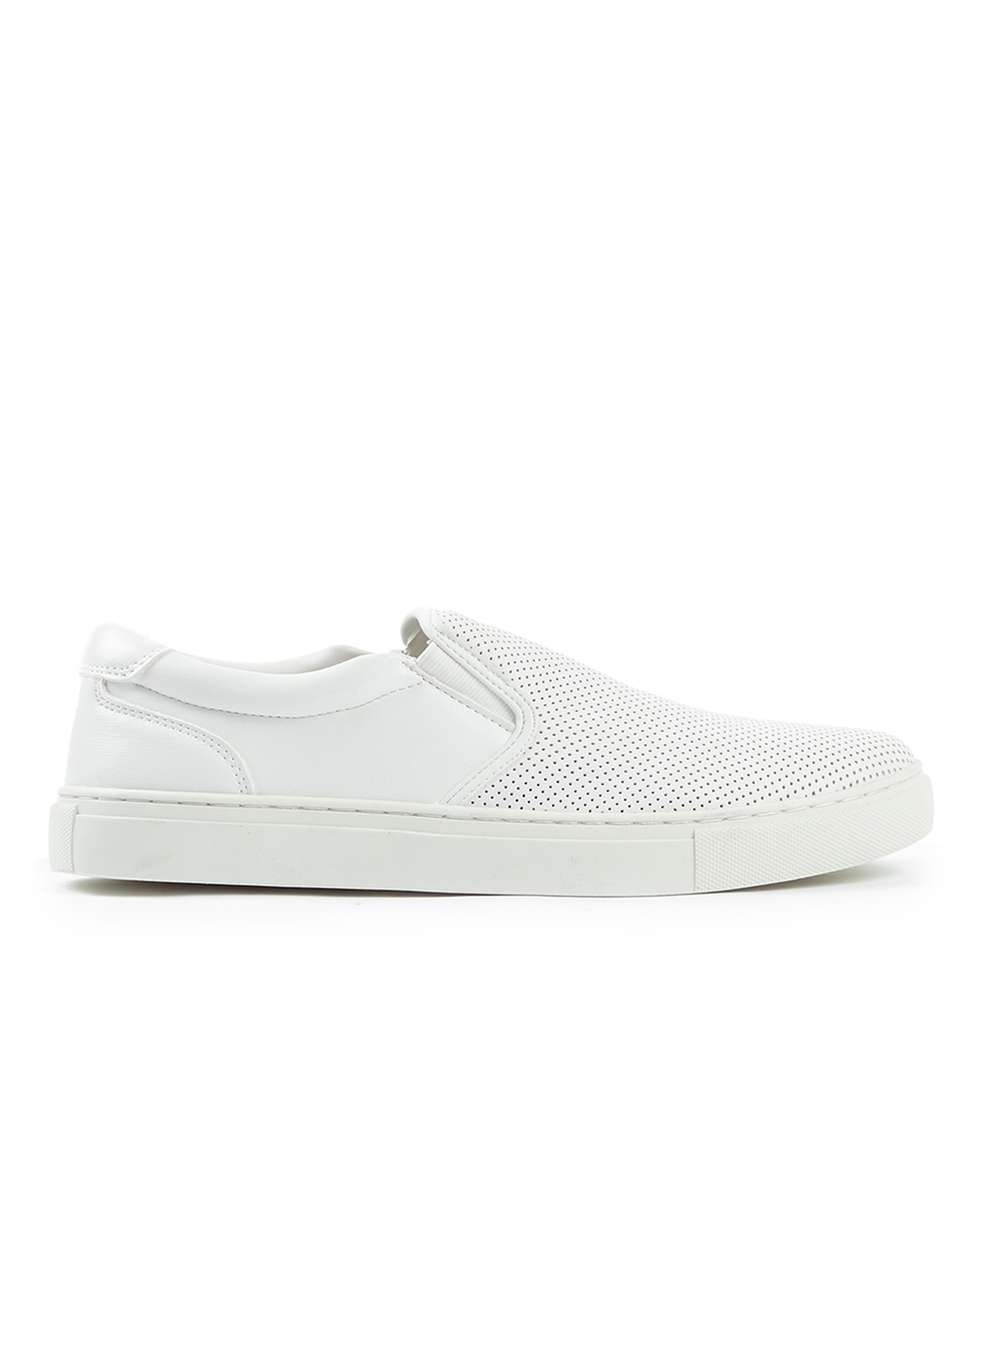 Topman White Slip on Trainers